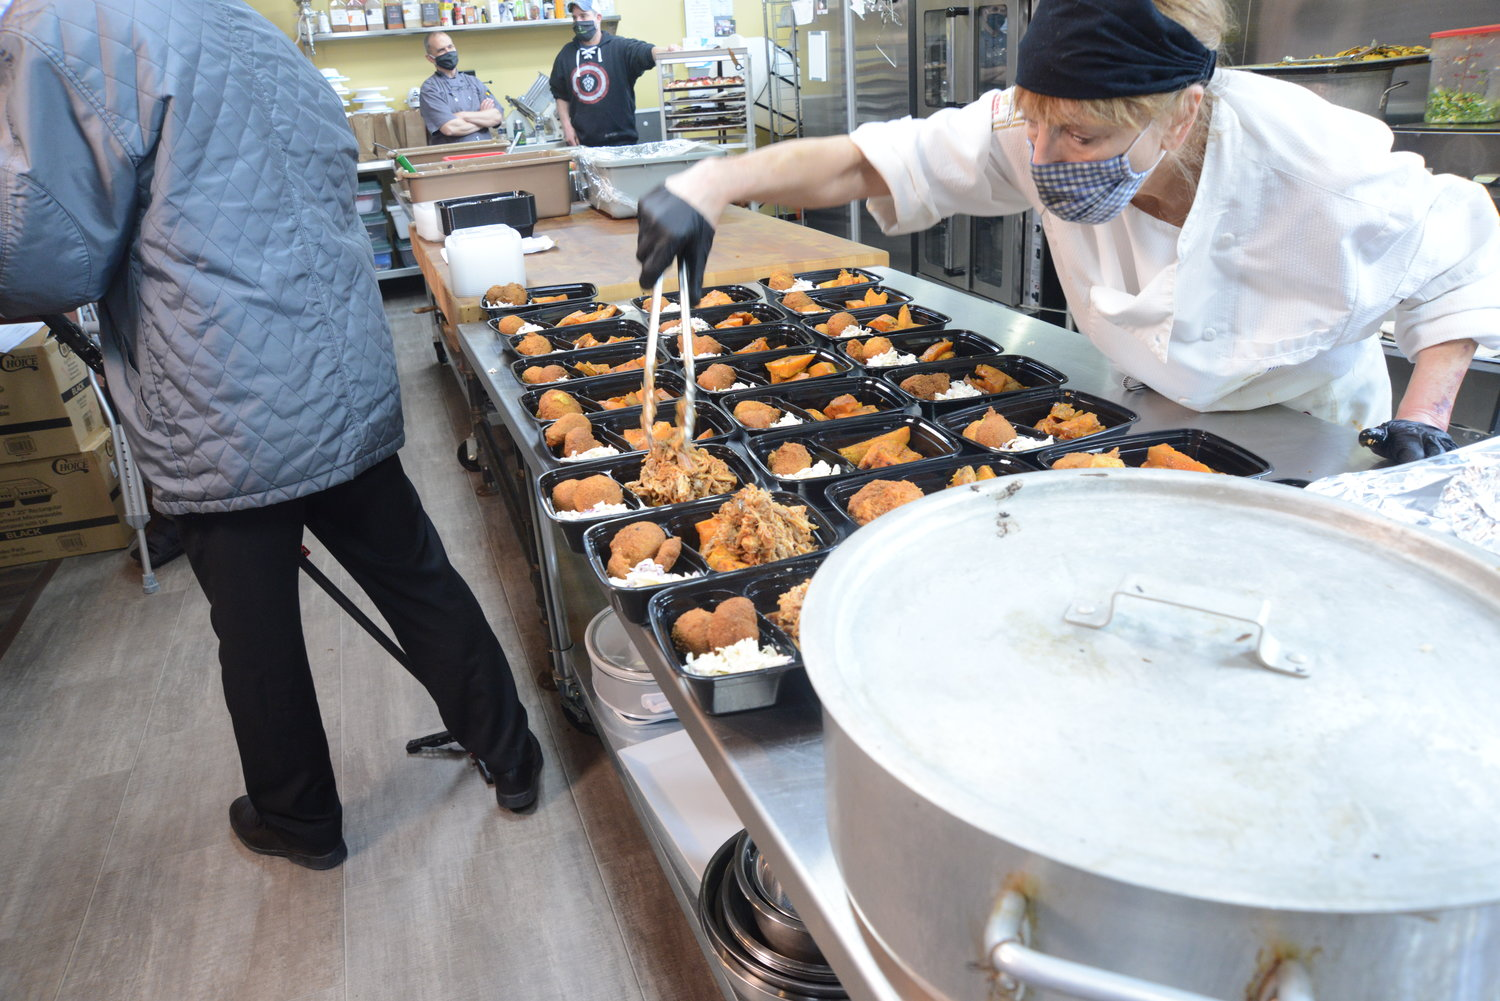 After the judges' meals, the Wallenpaupack culinary team had a slew of online takeout orders to fulfill.